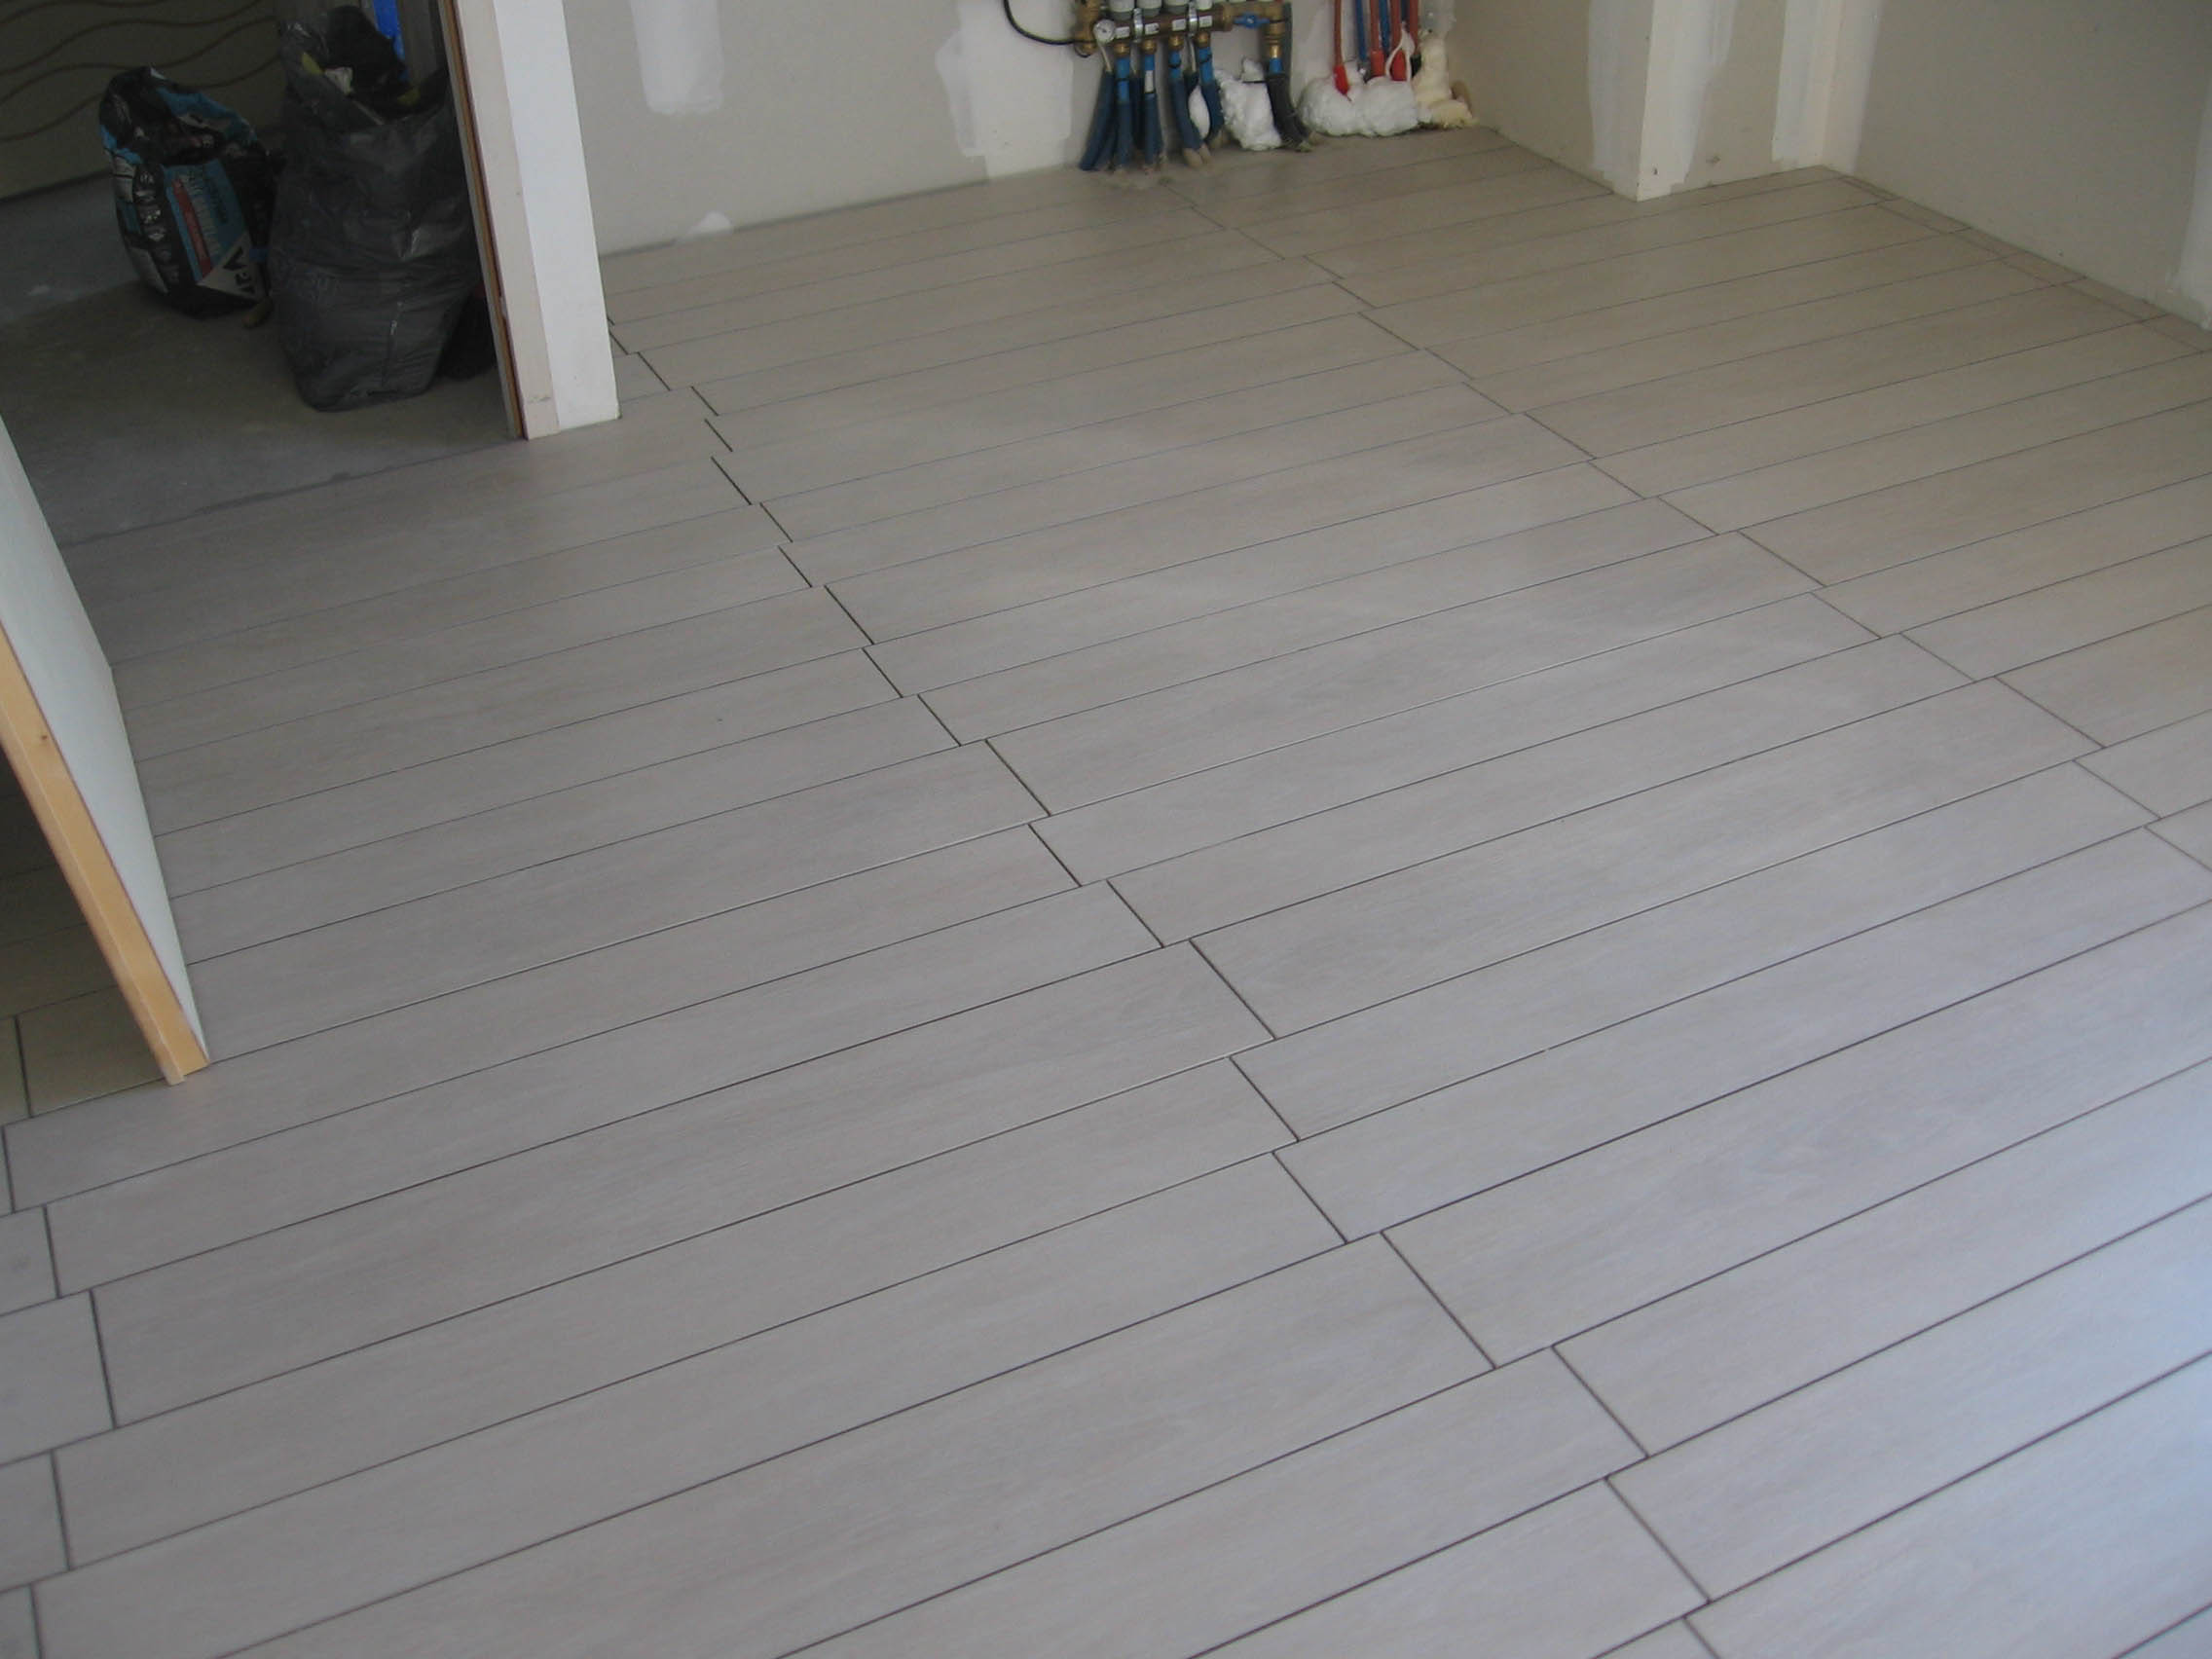 Comment Poser Un Carrelage Imitation Parquet 302 Found